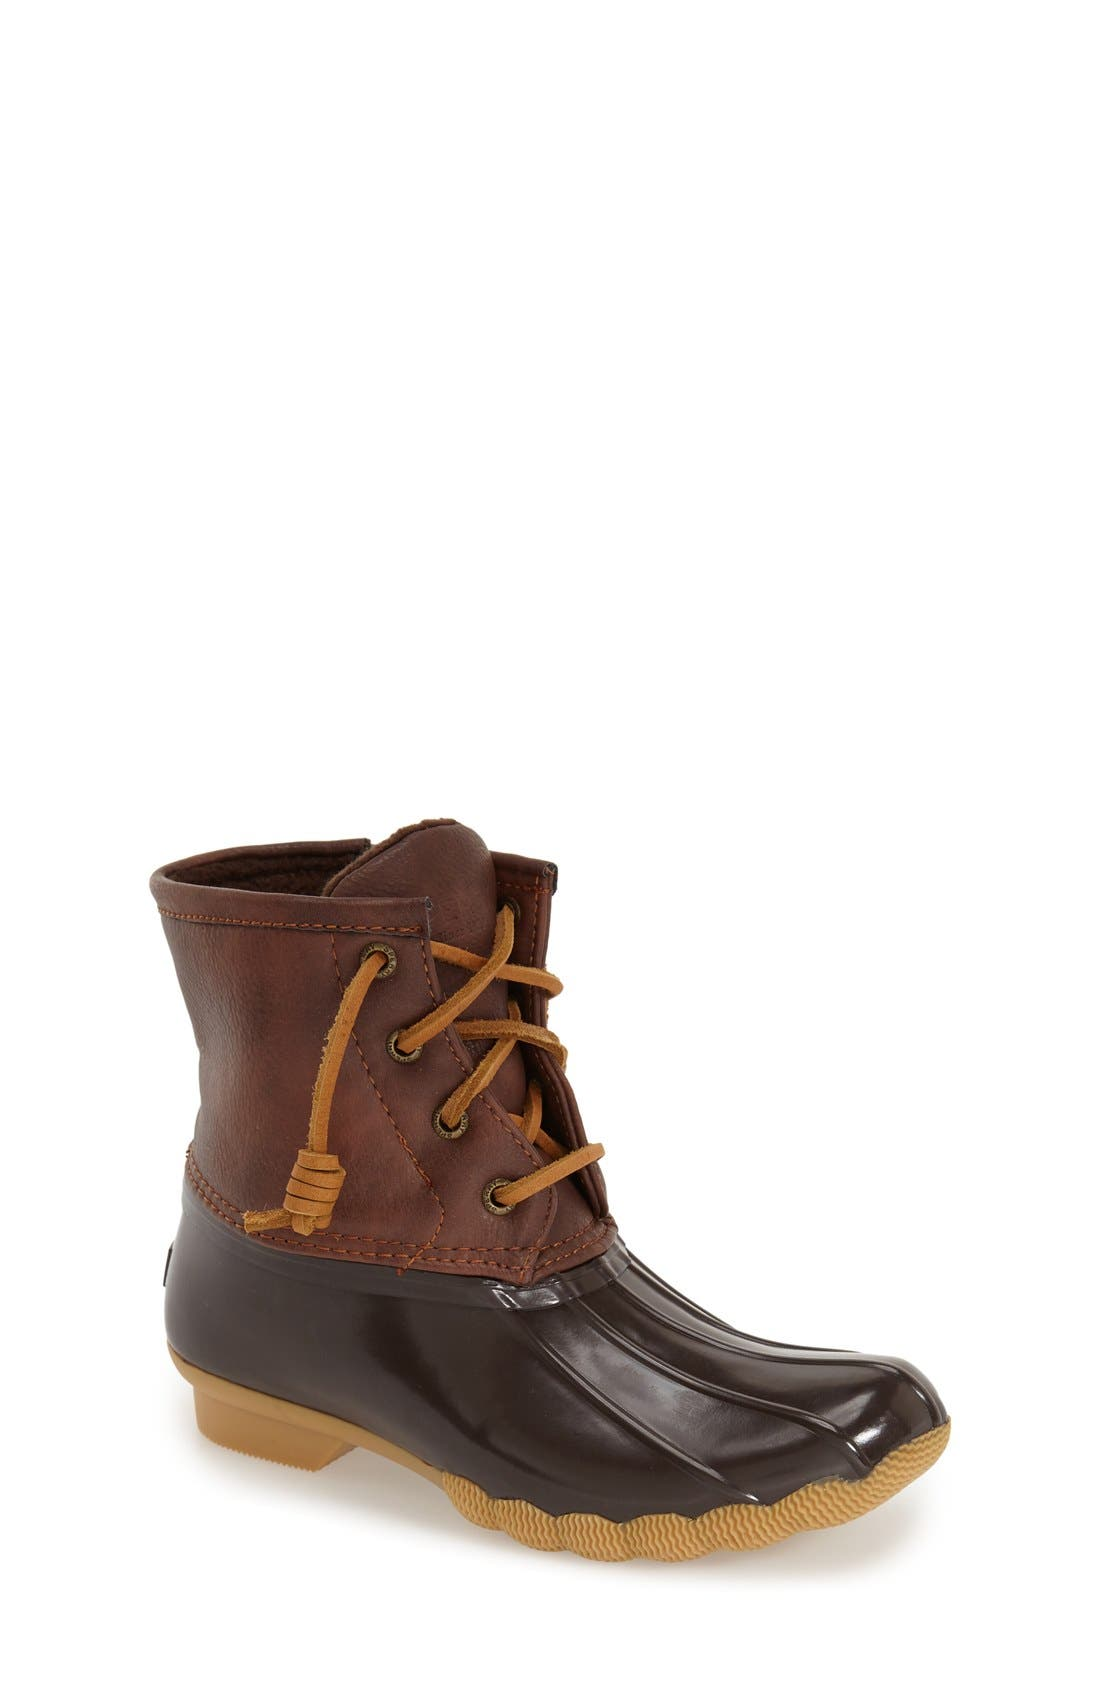 Saltwater Duck Boot,                         Main,                         color, BROWN